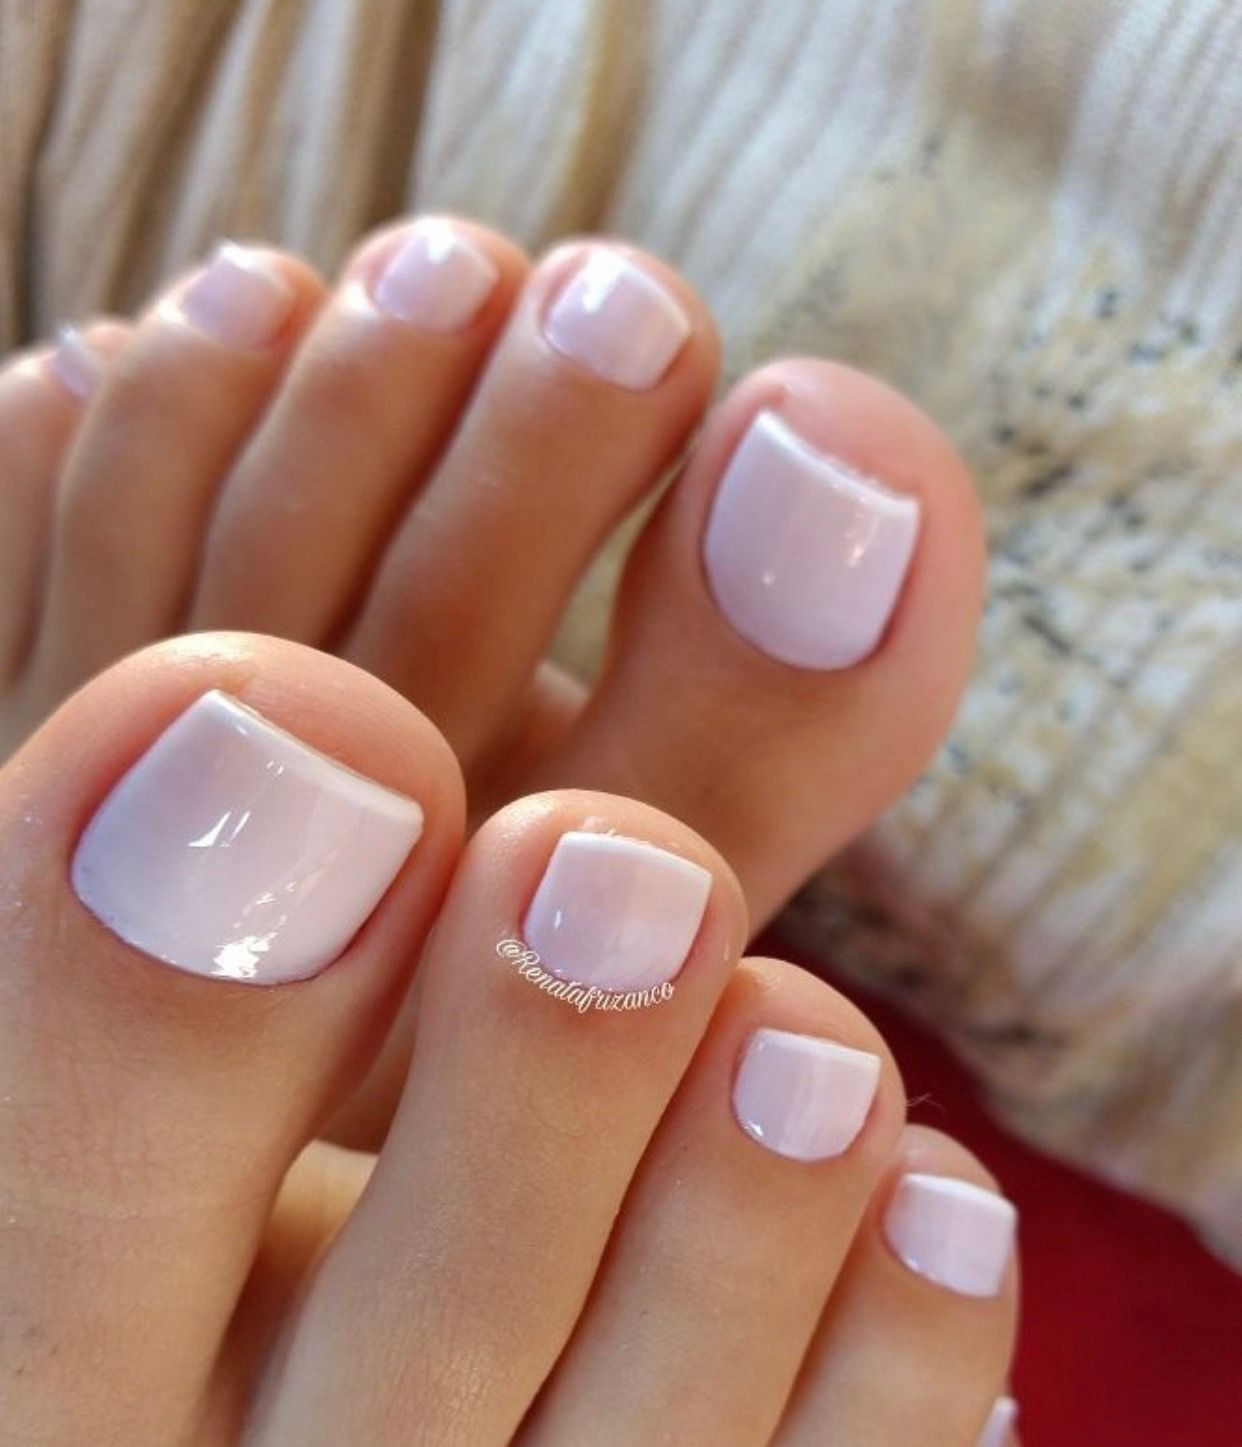 her toes are beautiful!!